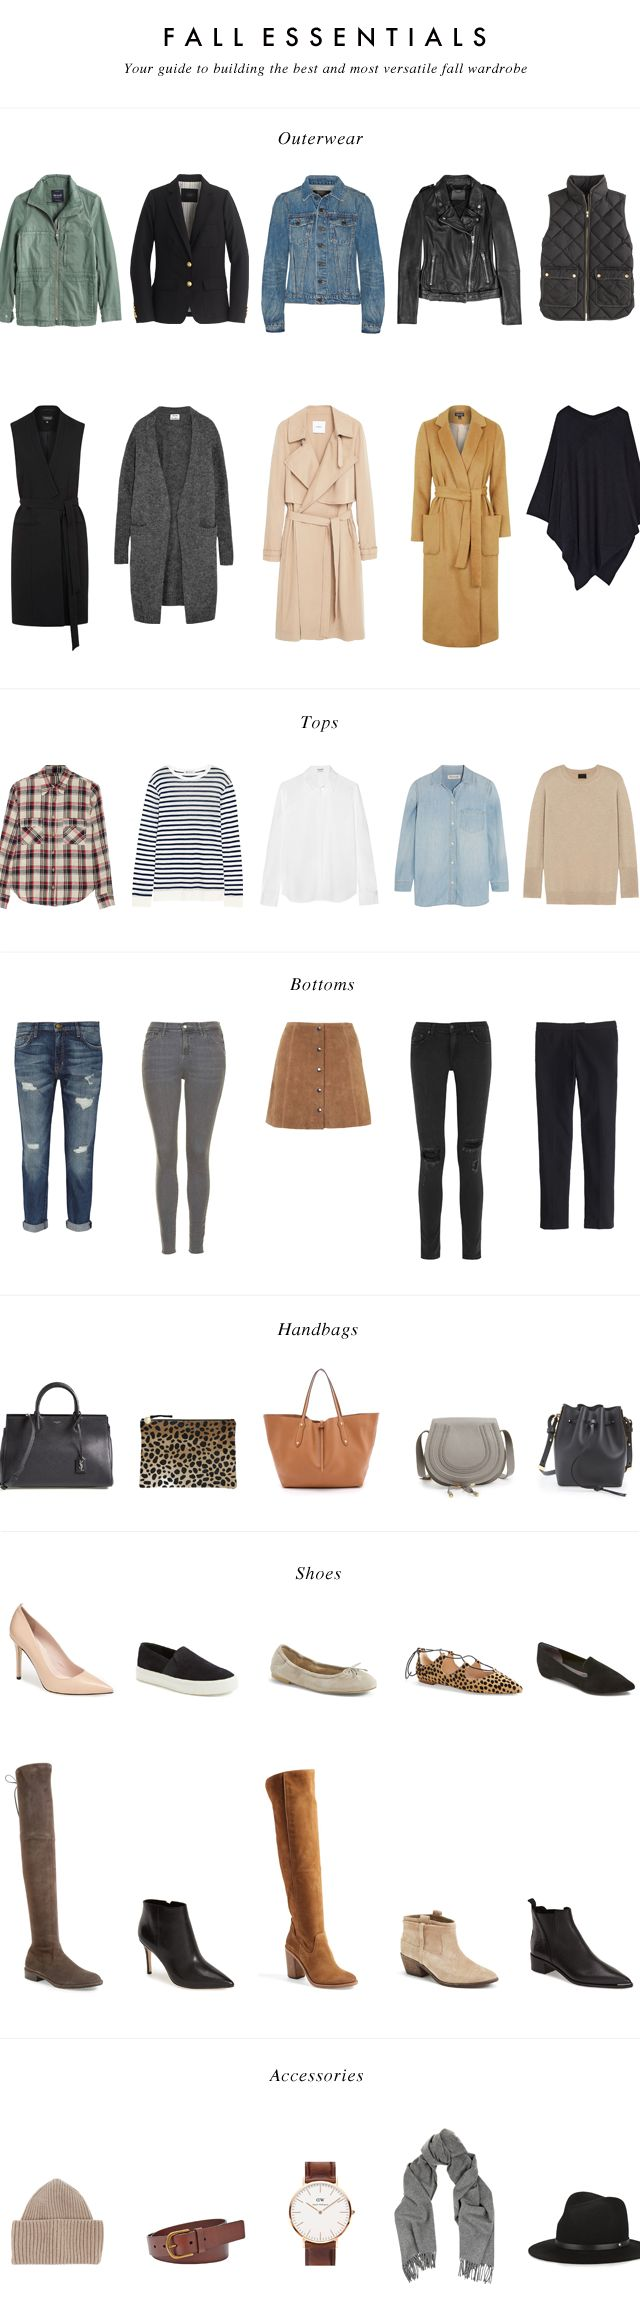 Fall Essentials: Your Guide to building the best and most versatile fall wardrobe